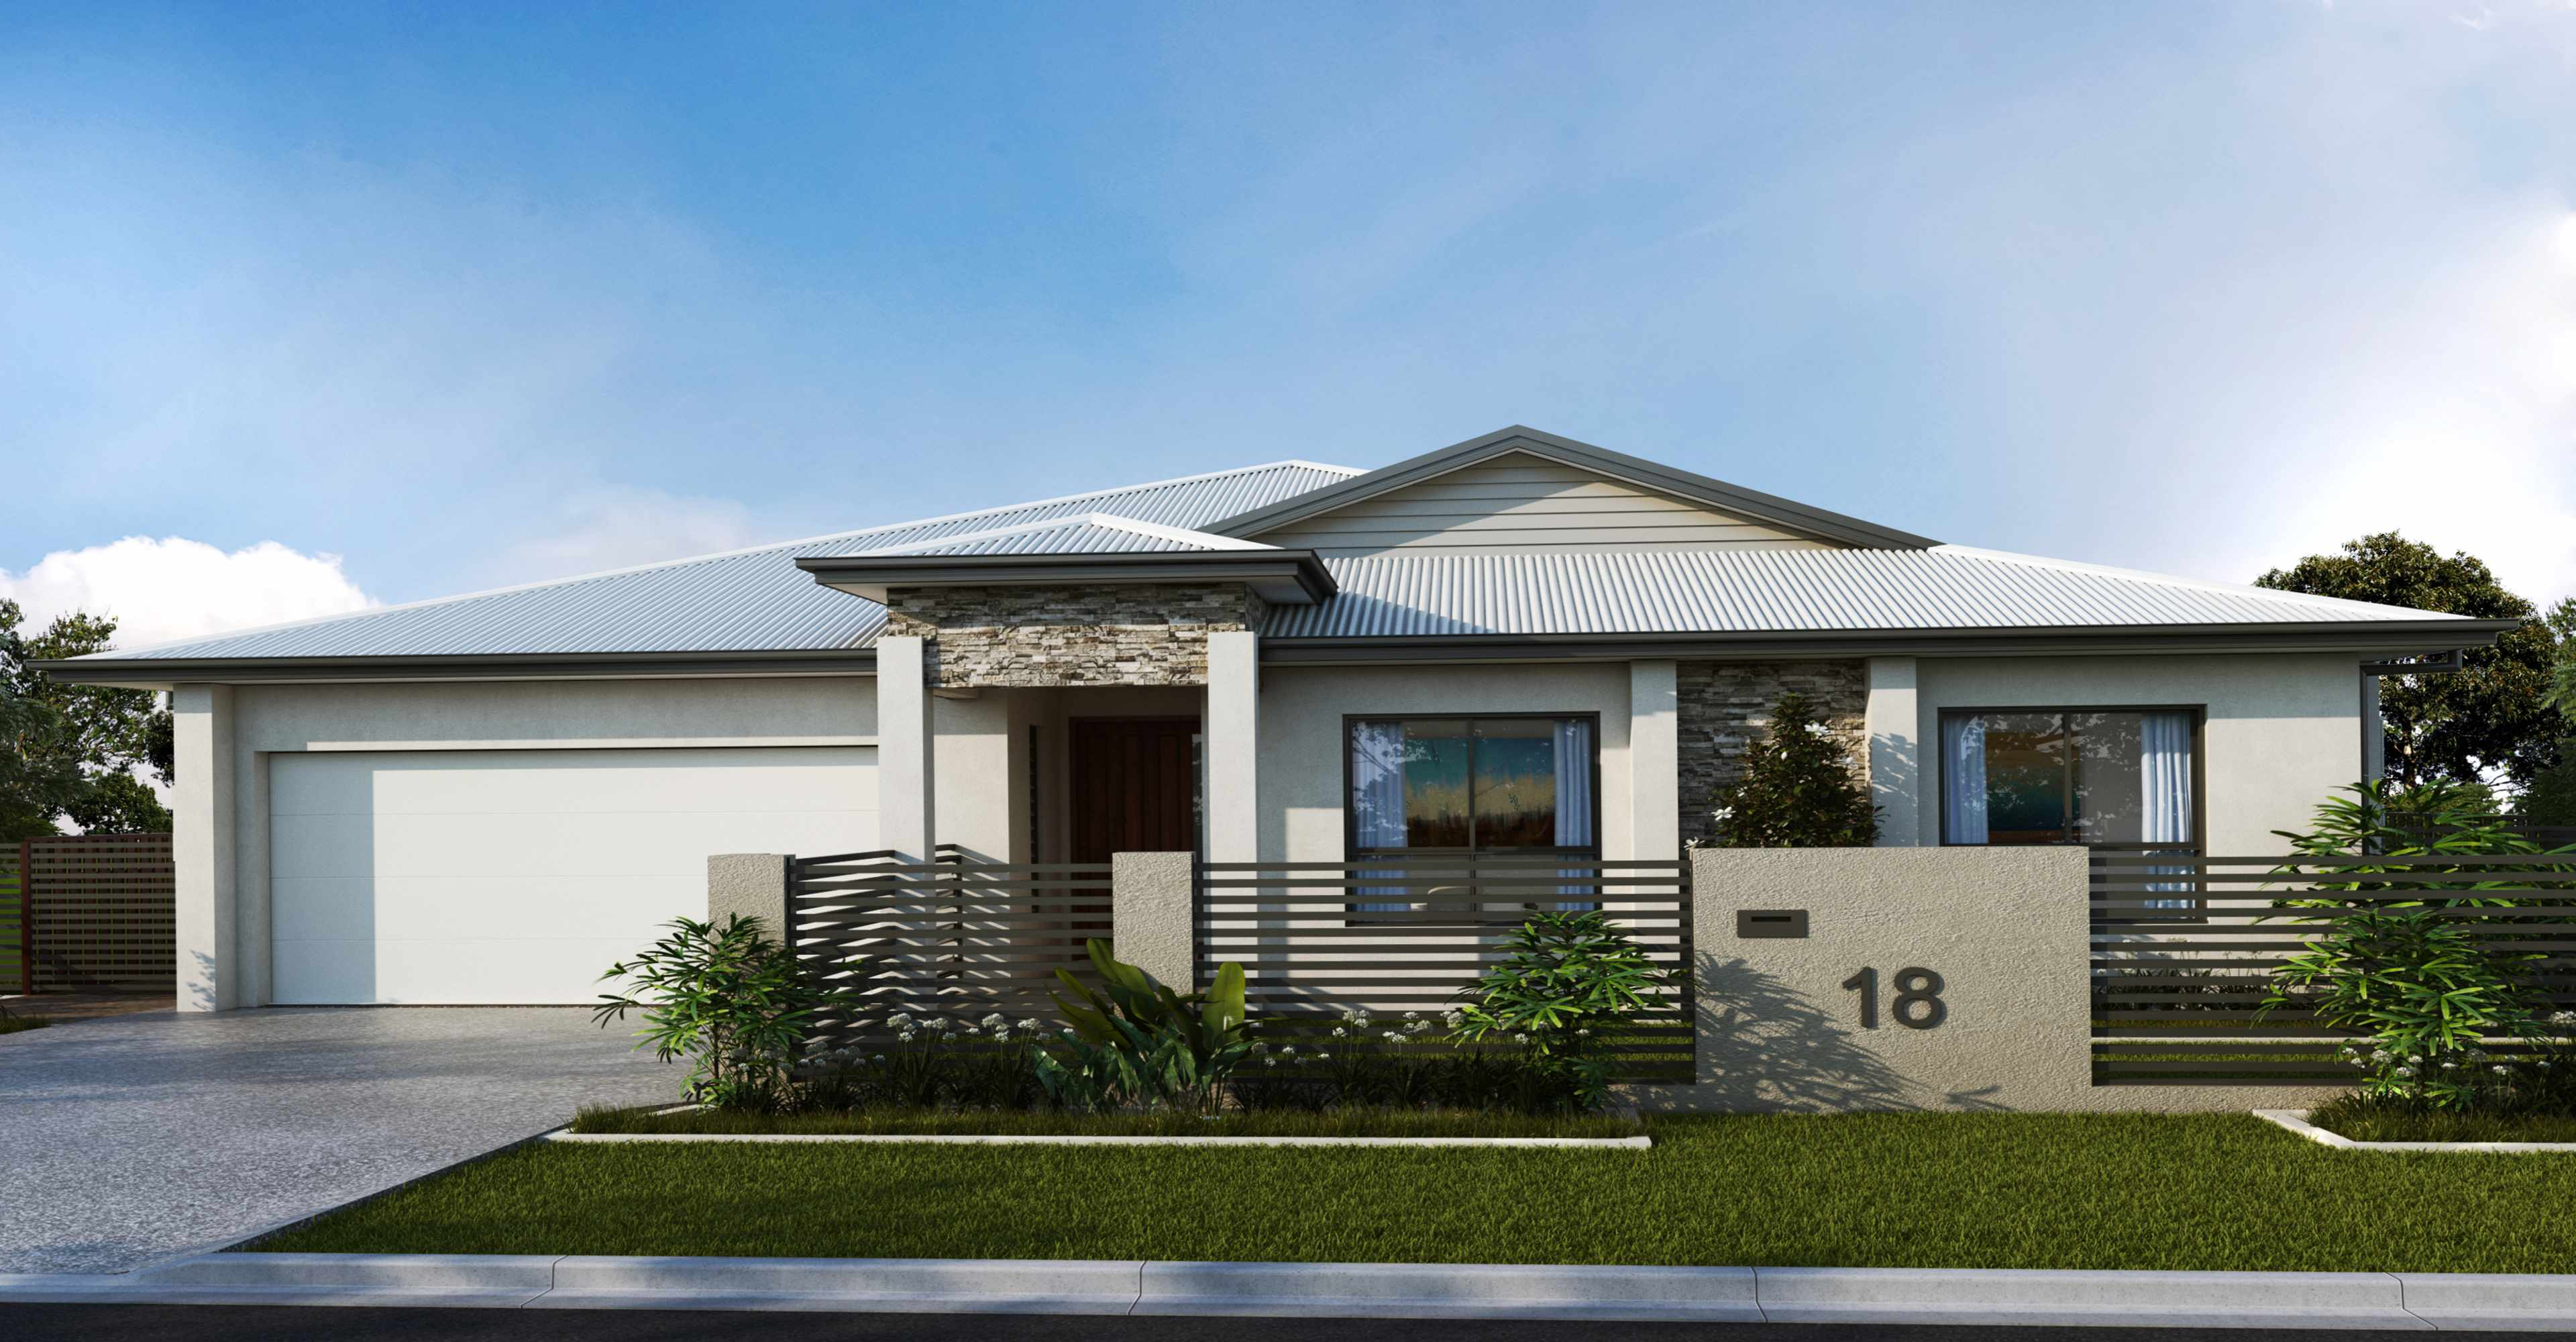 C b designs builders townsville for Home designs townsville